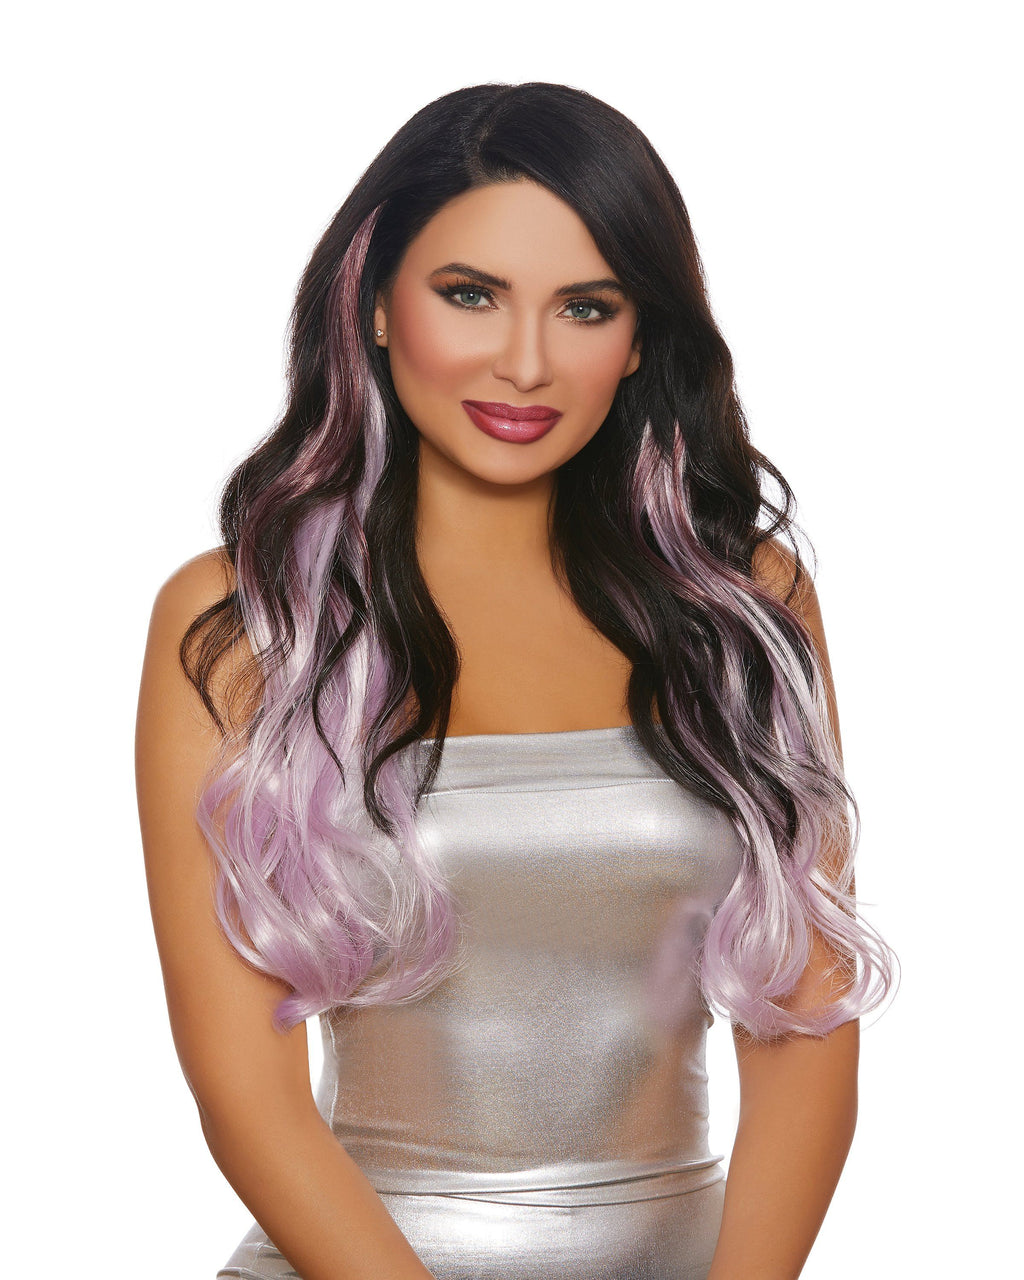 Long Wavy Layered Three-Piece Hair Extensions Hair Extensions Dreamgirl Costume